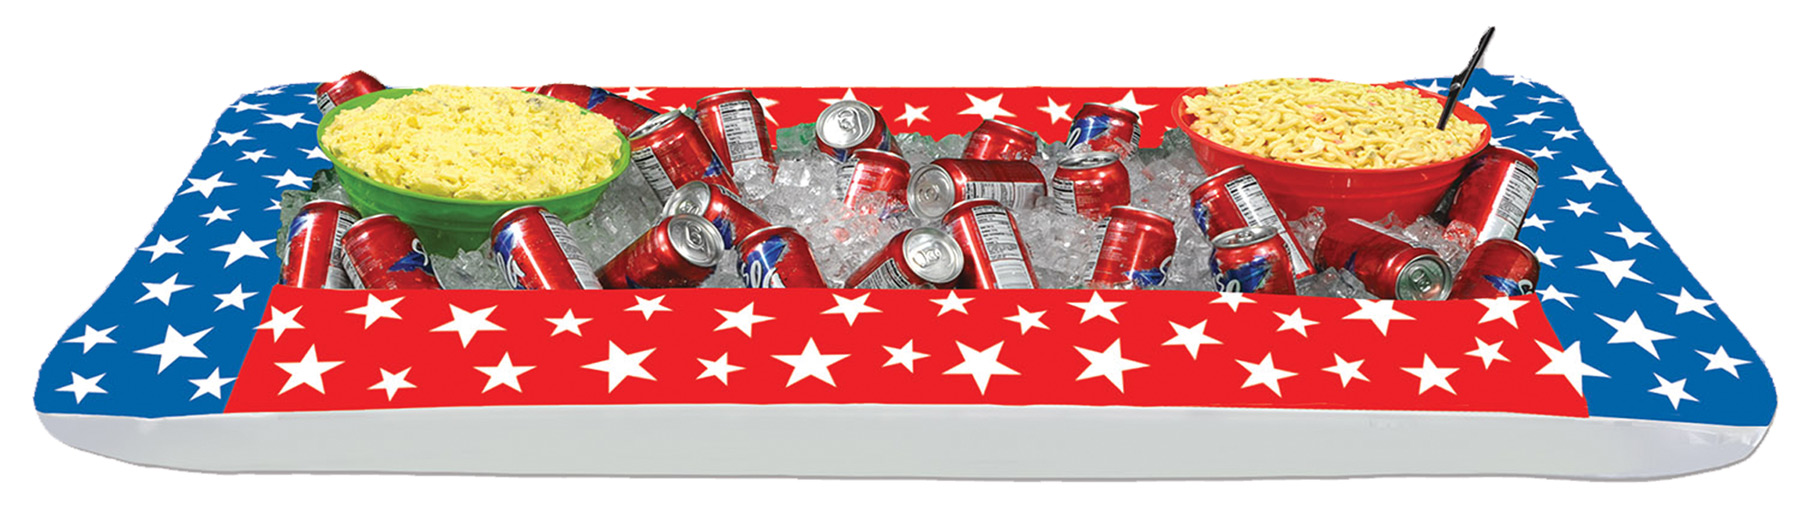 Featured Image for Inflatable Patriotic Buffet Cooler